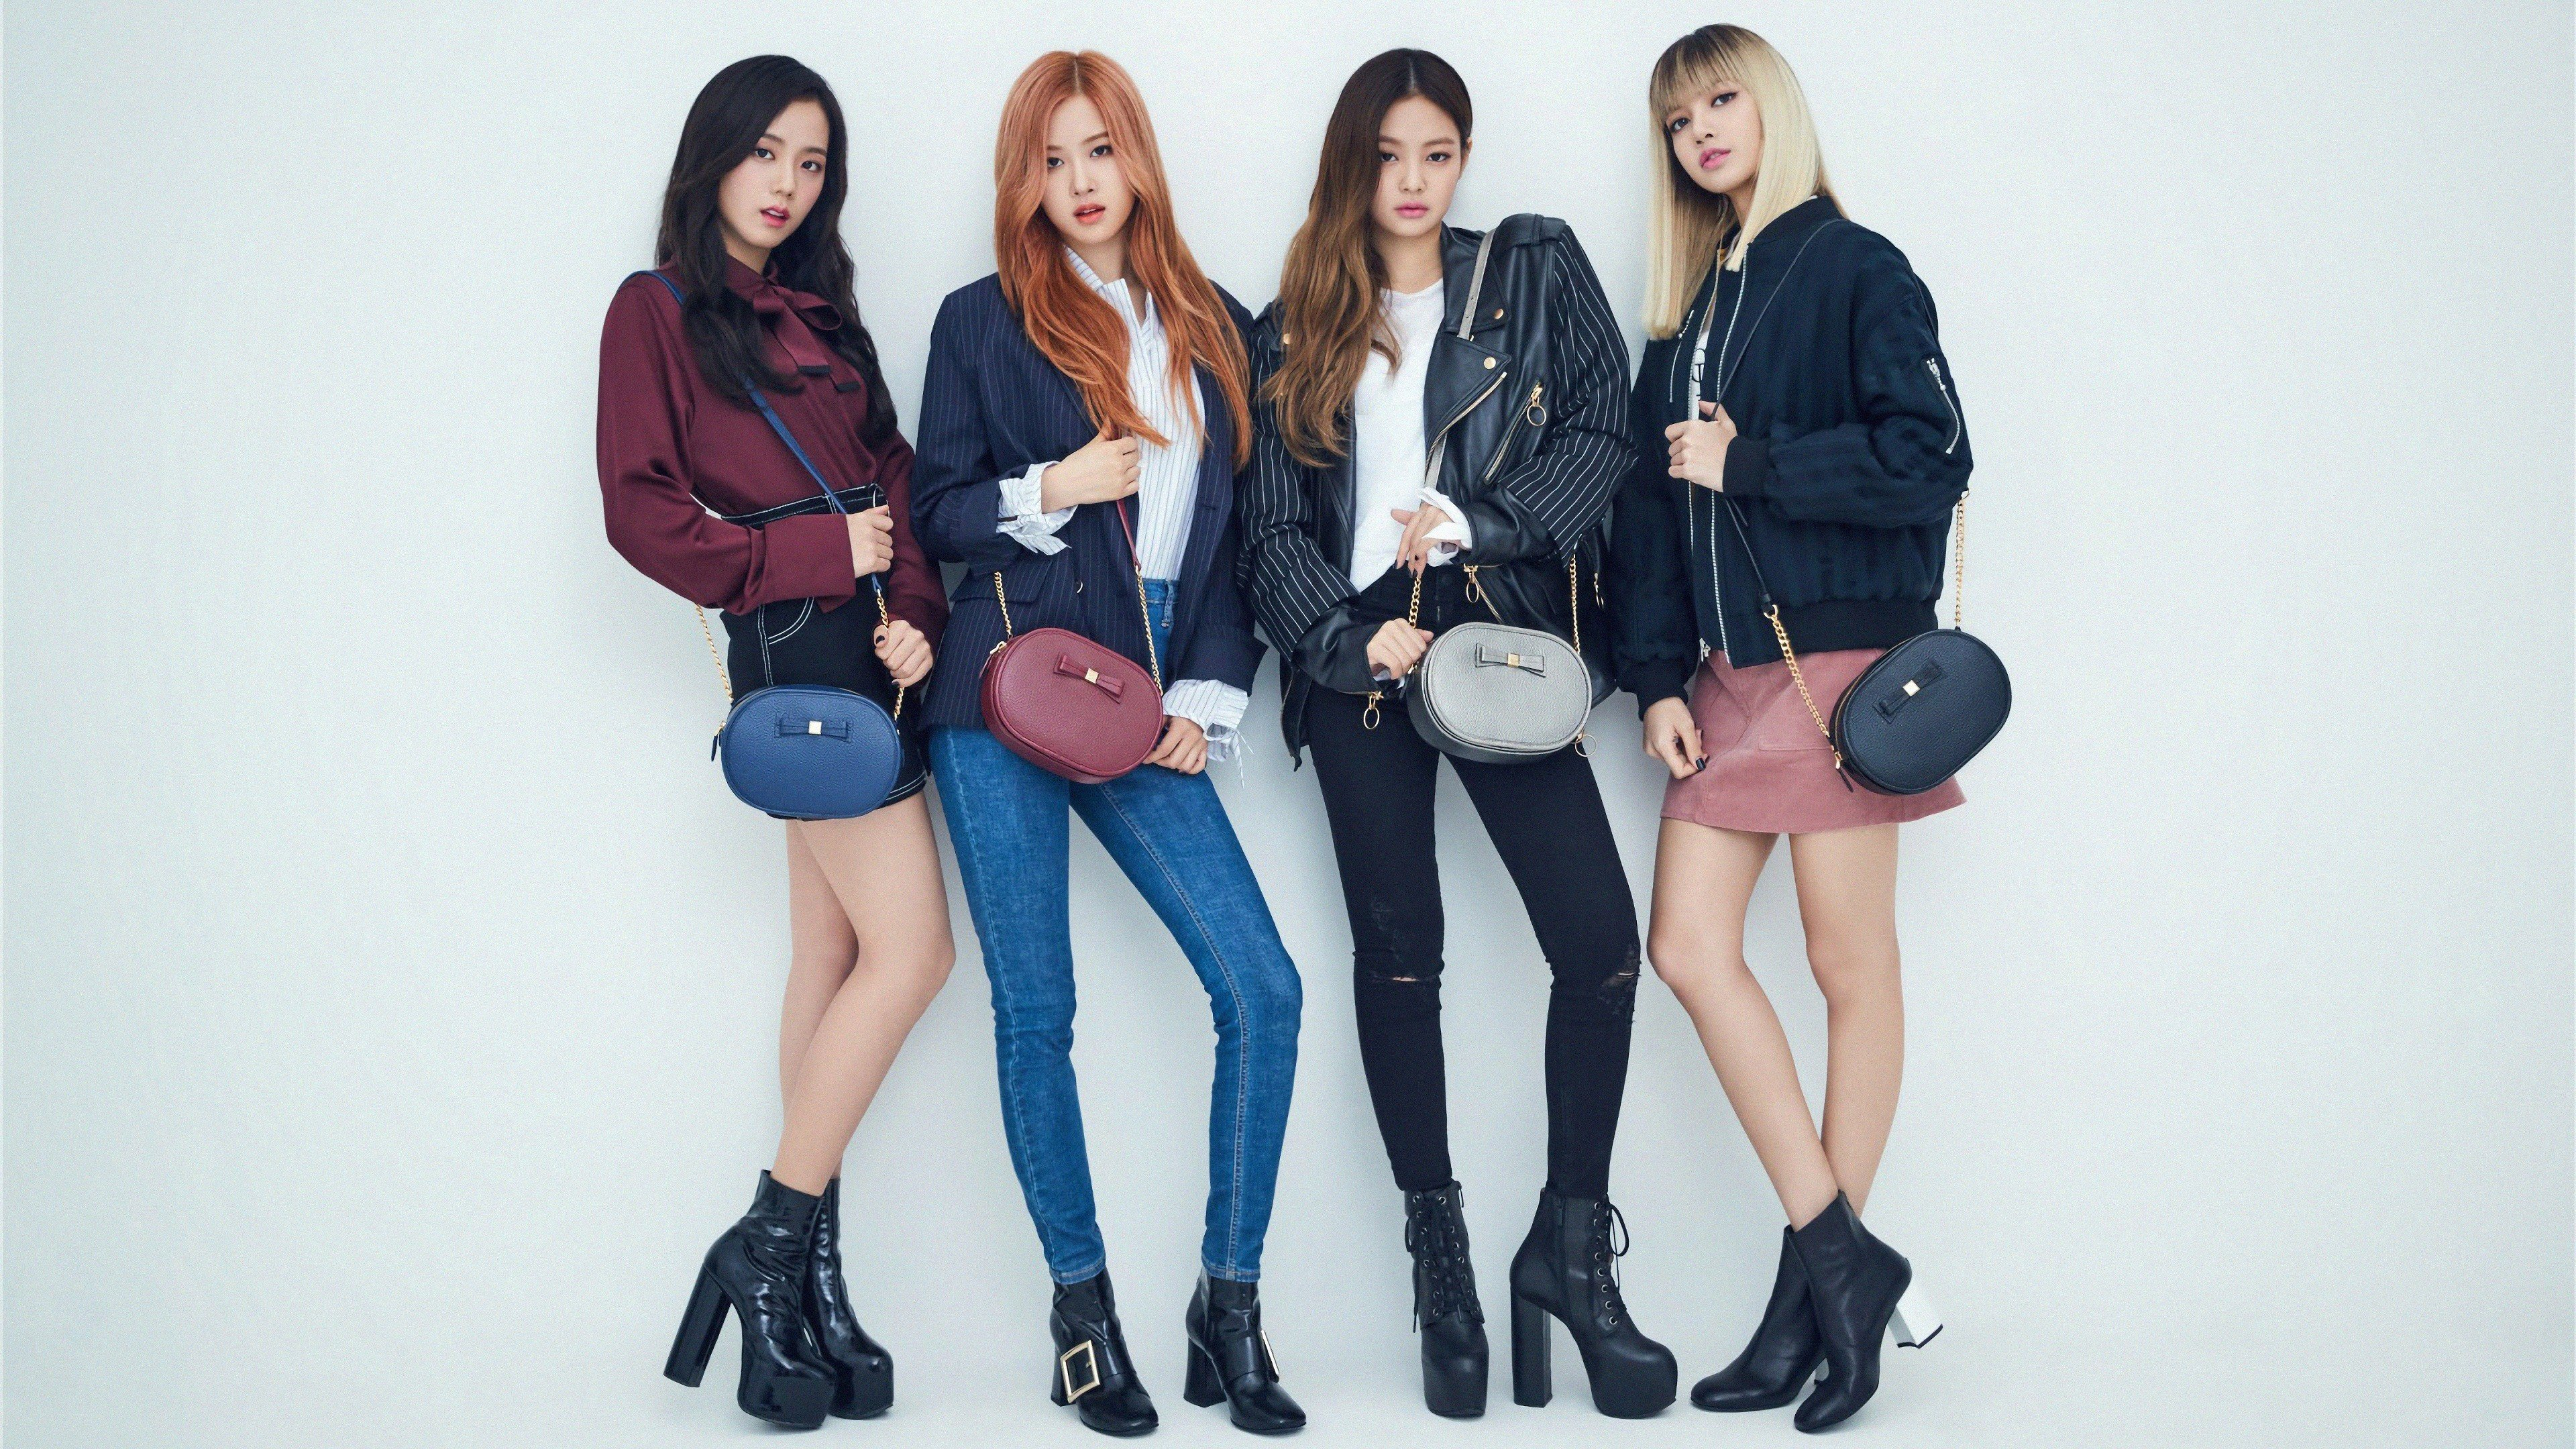 9da036917b5ec Move over BTS, Blackpink are the new K-pop act making history in the ...